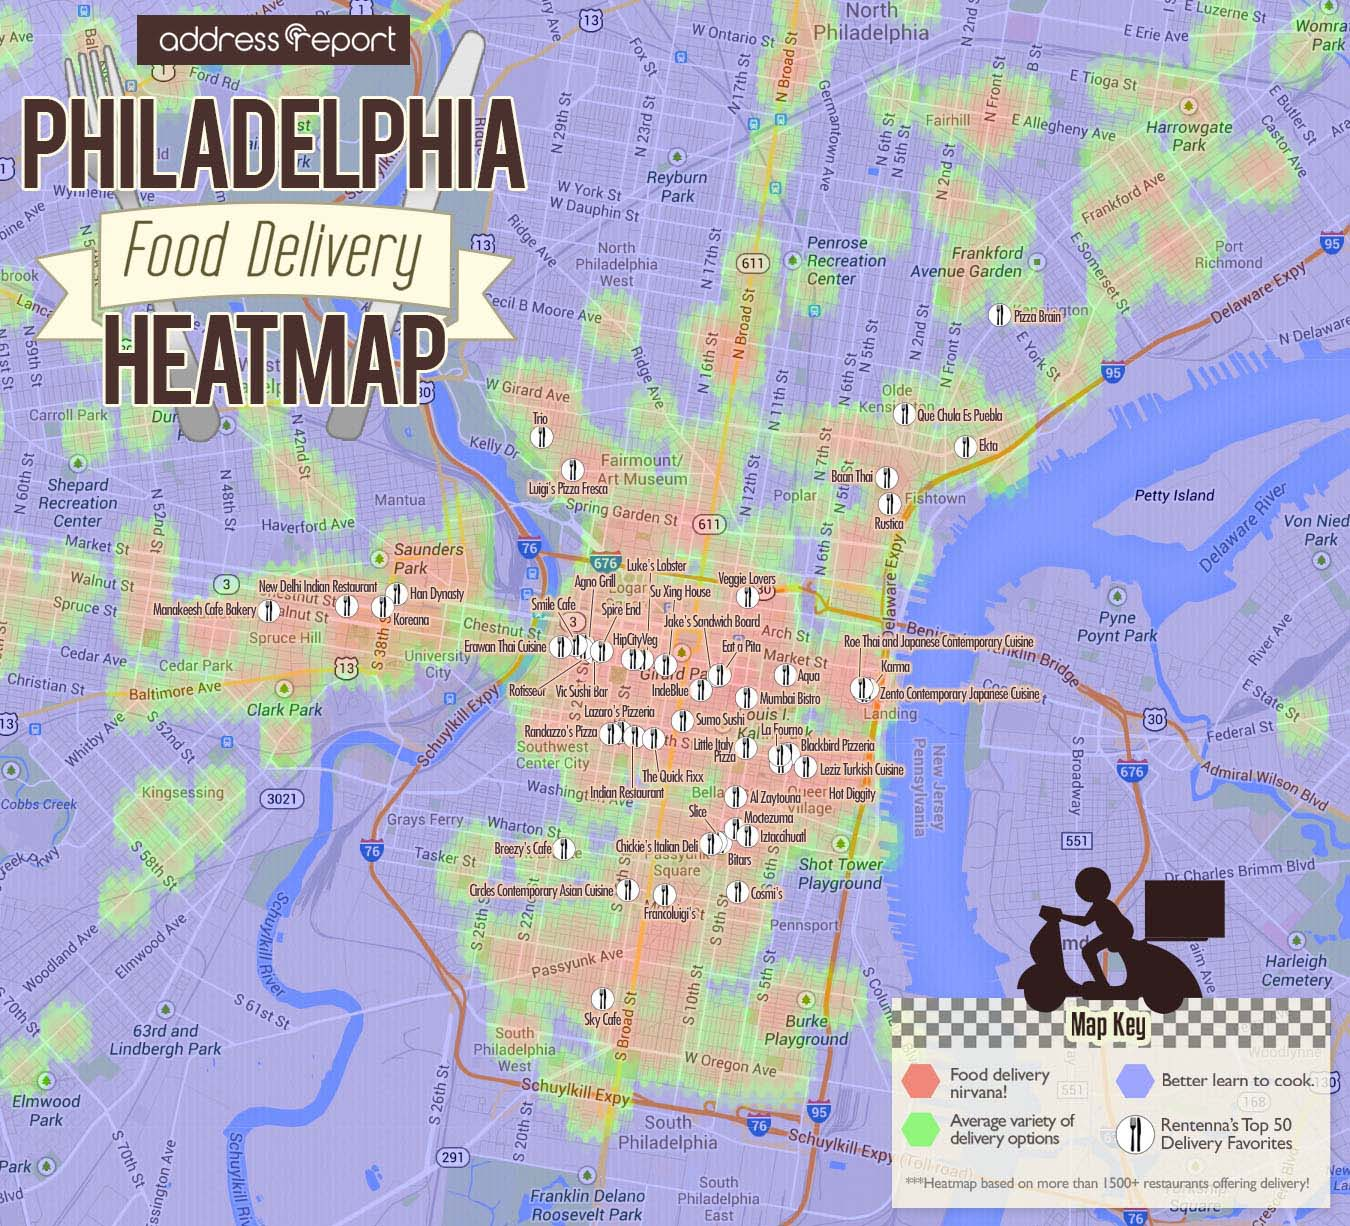 Philadelphia Food Delivery Heatmap by Address Report